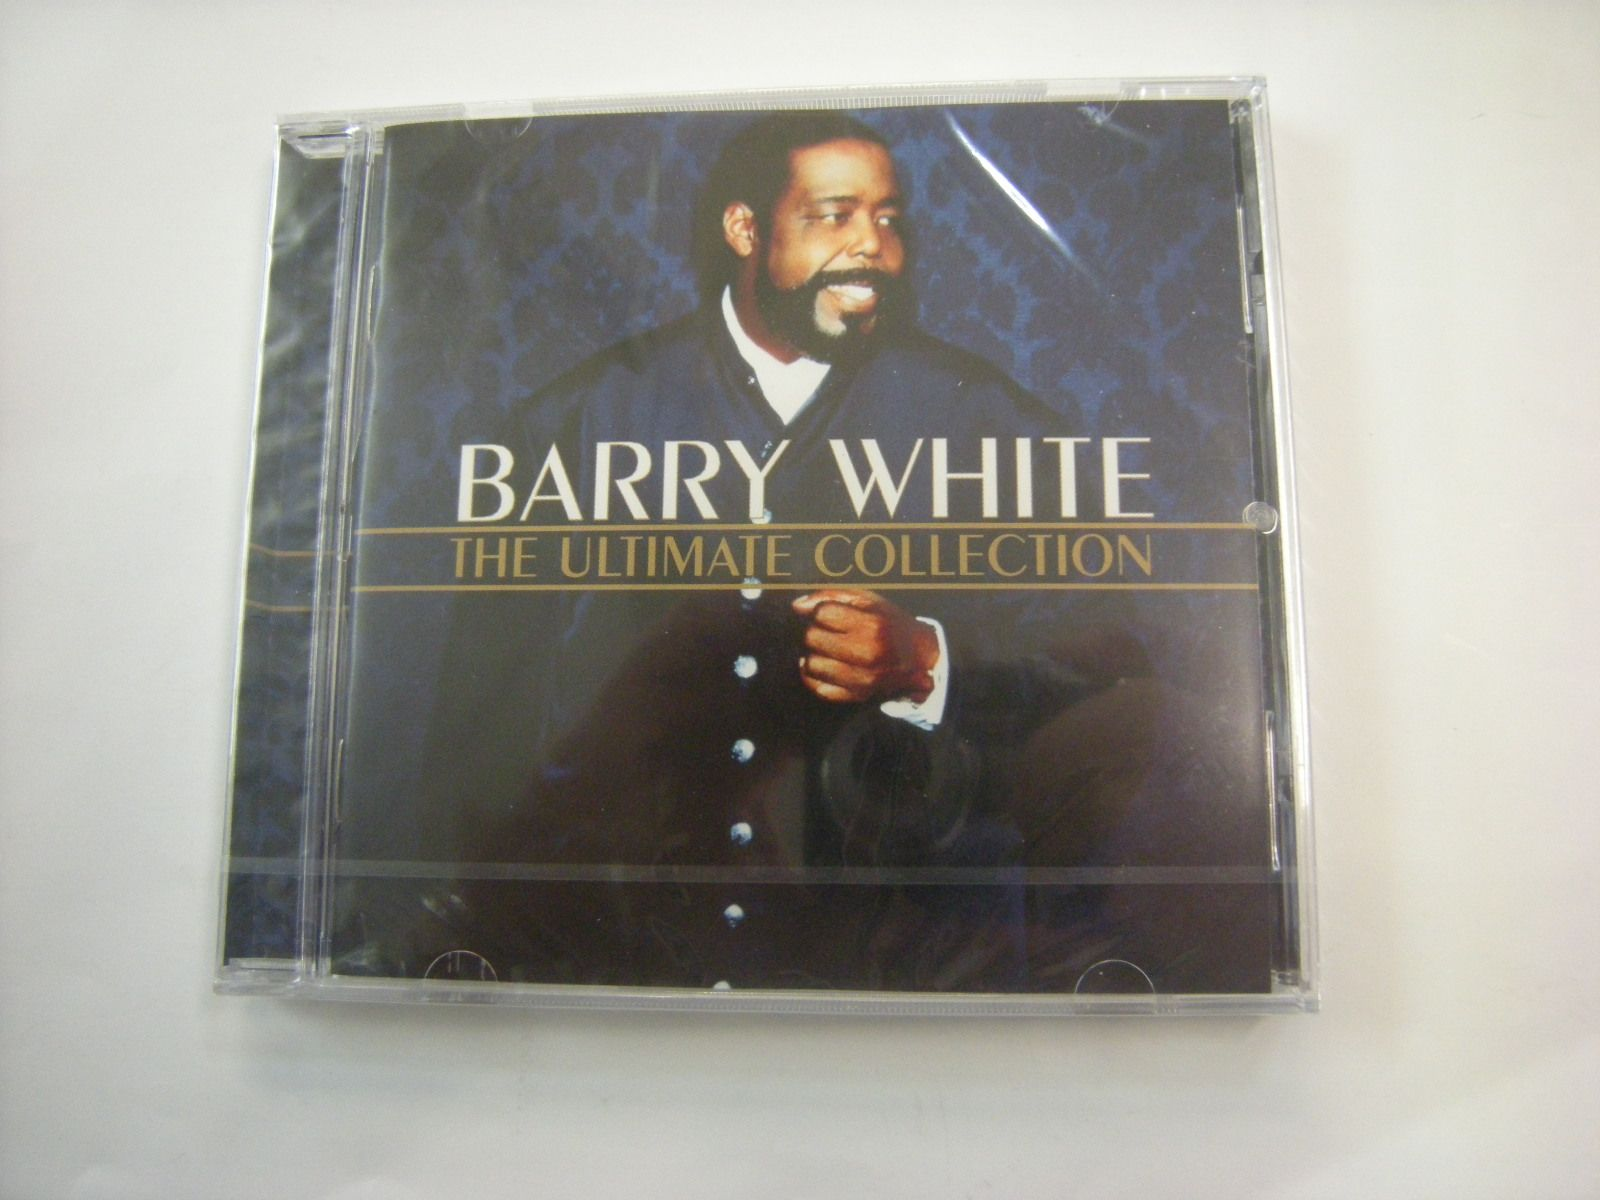 Barry White Ultimate Collection: Barry White Ultimate Collection Records, LPs, Vinyl And